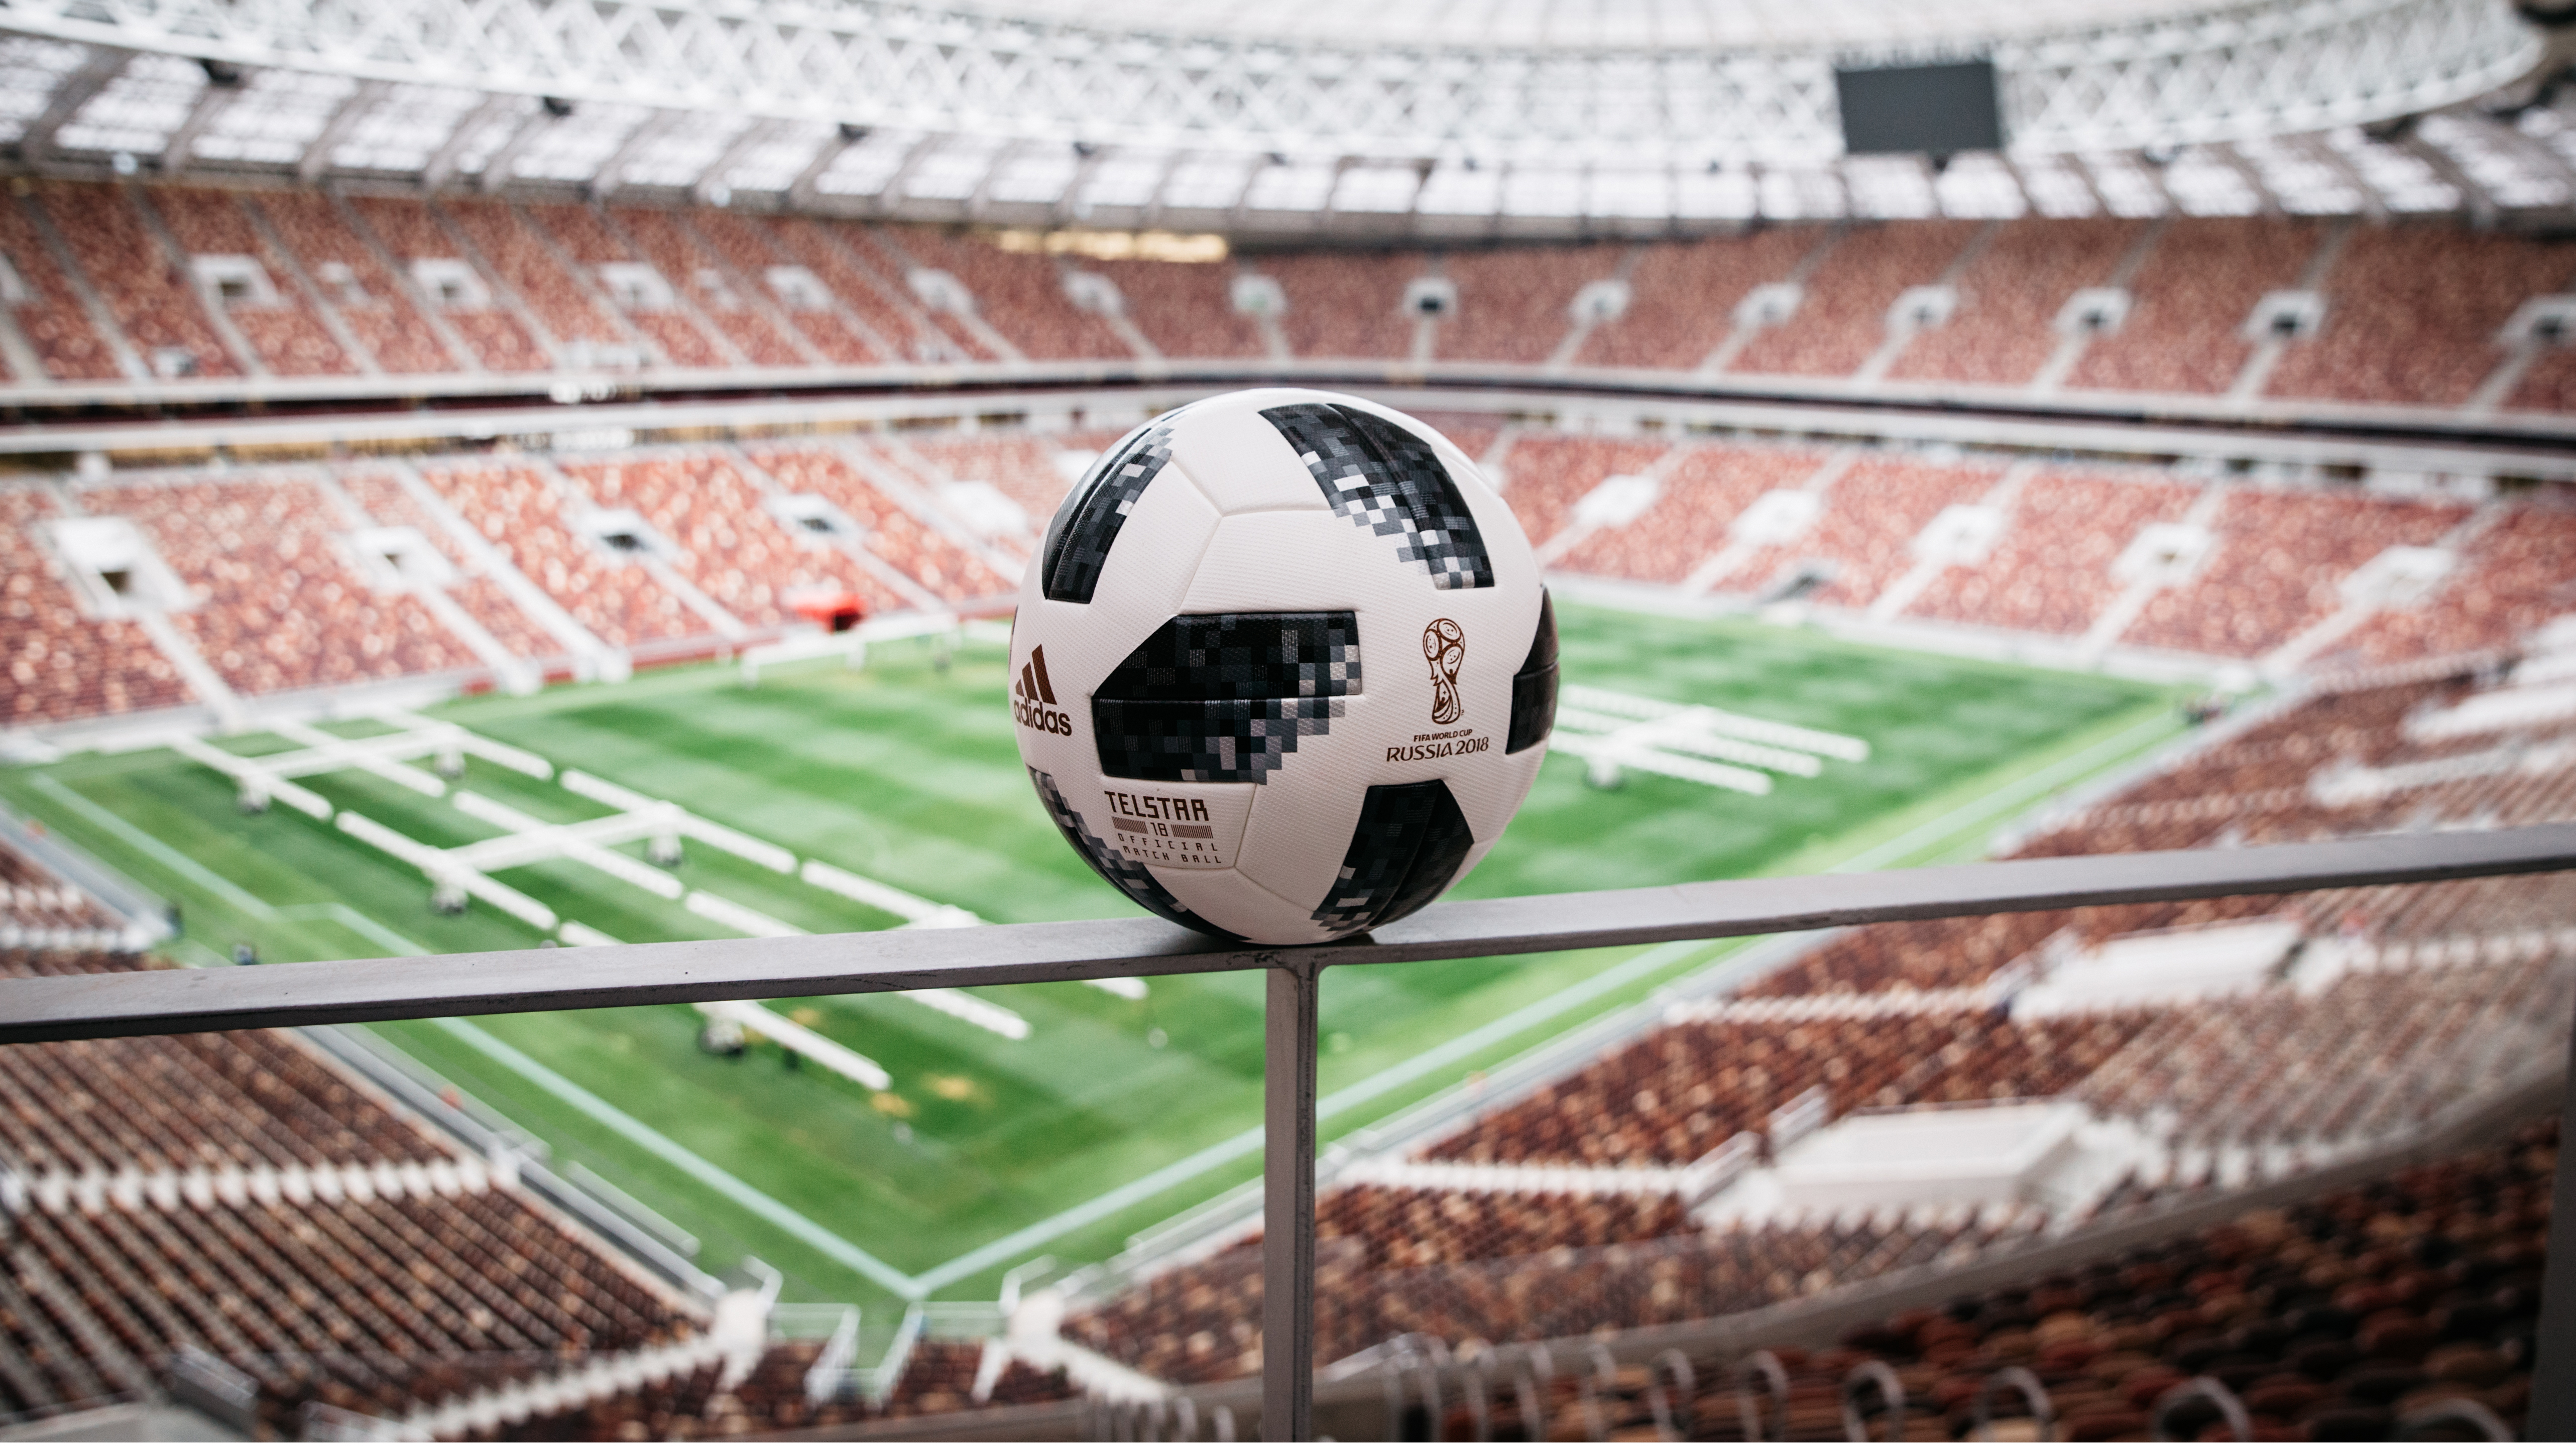 Satellites and microchips: the surprising tech behind the World Cup ball 1528965220_705_satellites-and-microchips-the-surprising-tech-behind-the-world-cup-ball